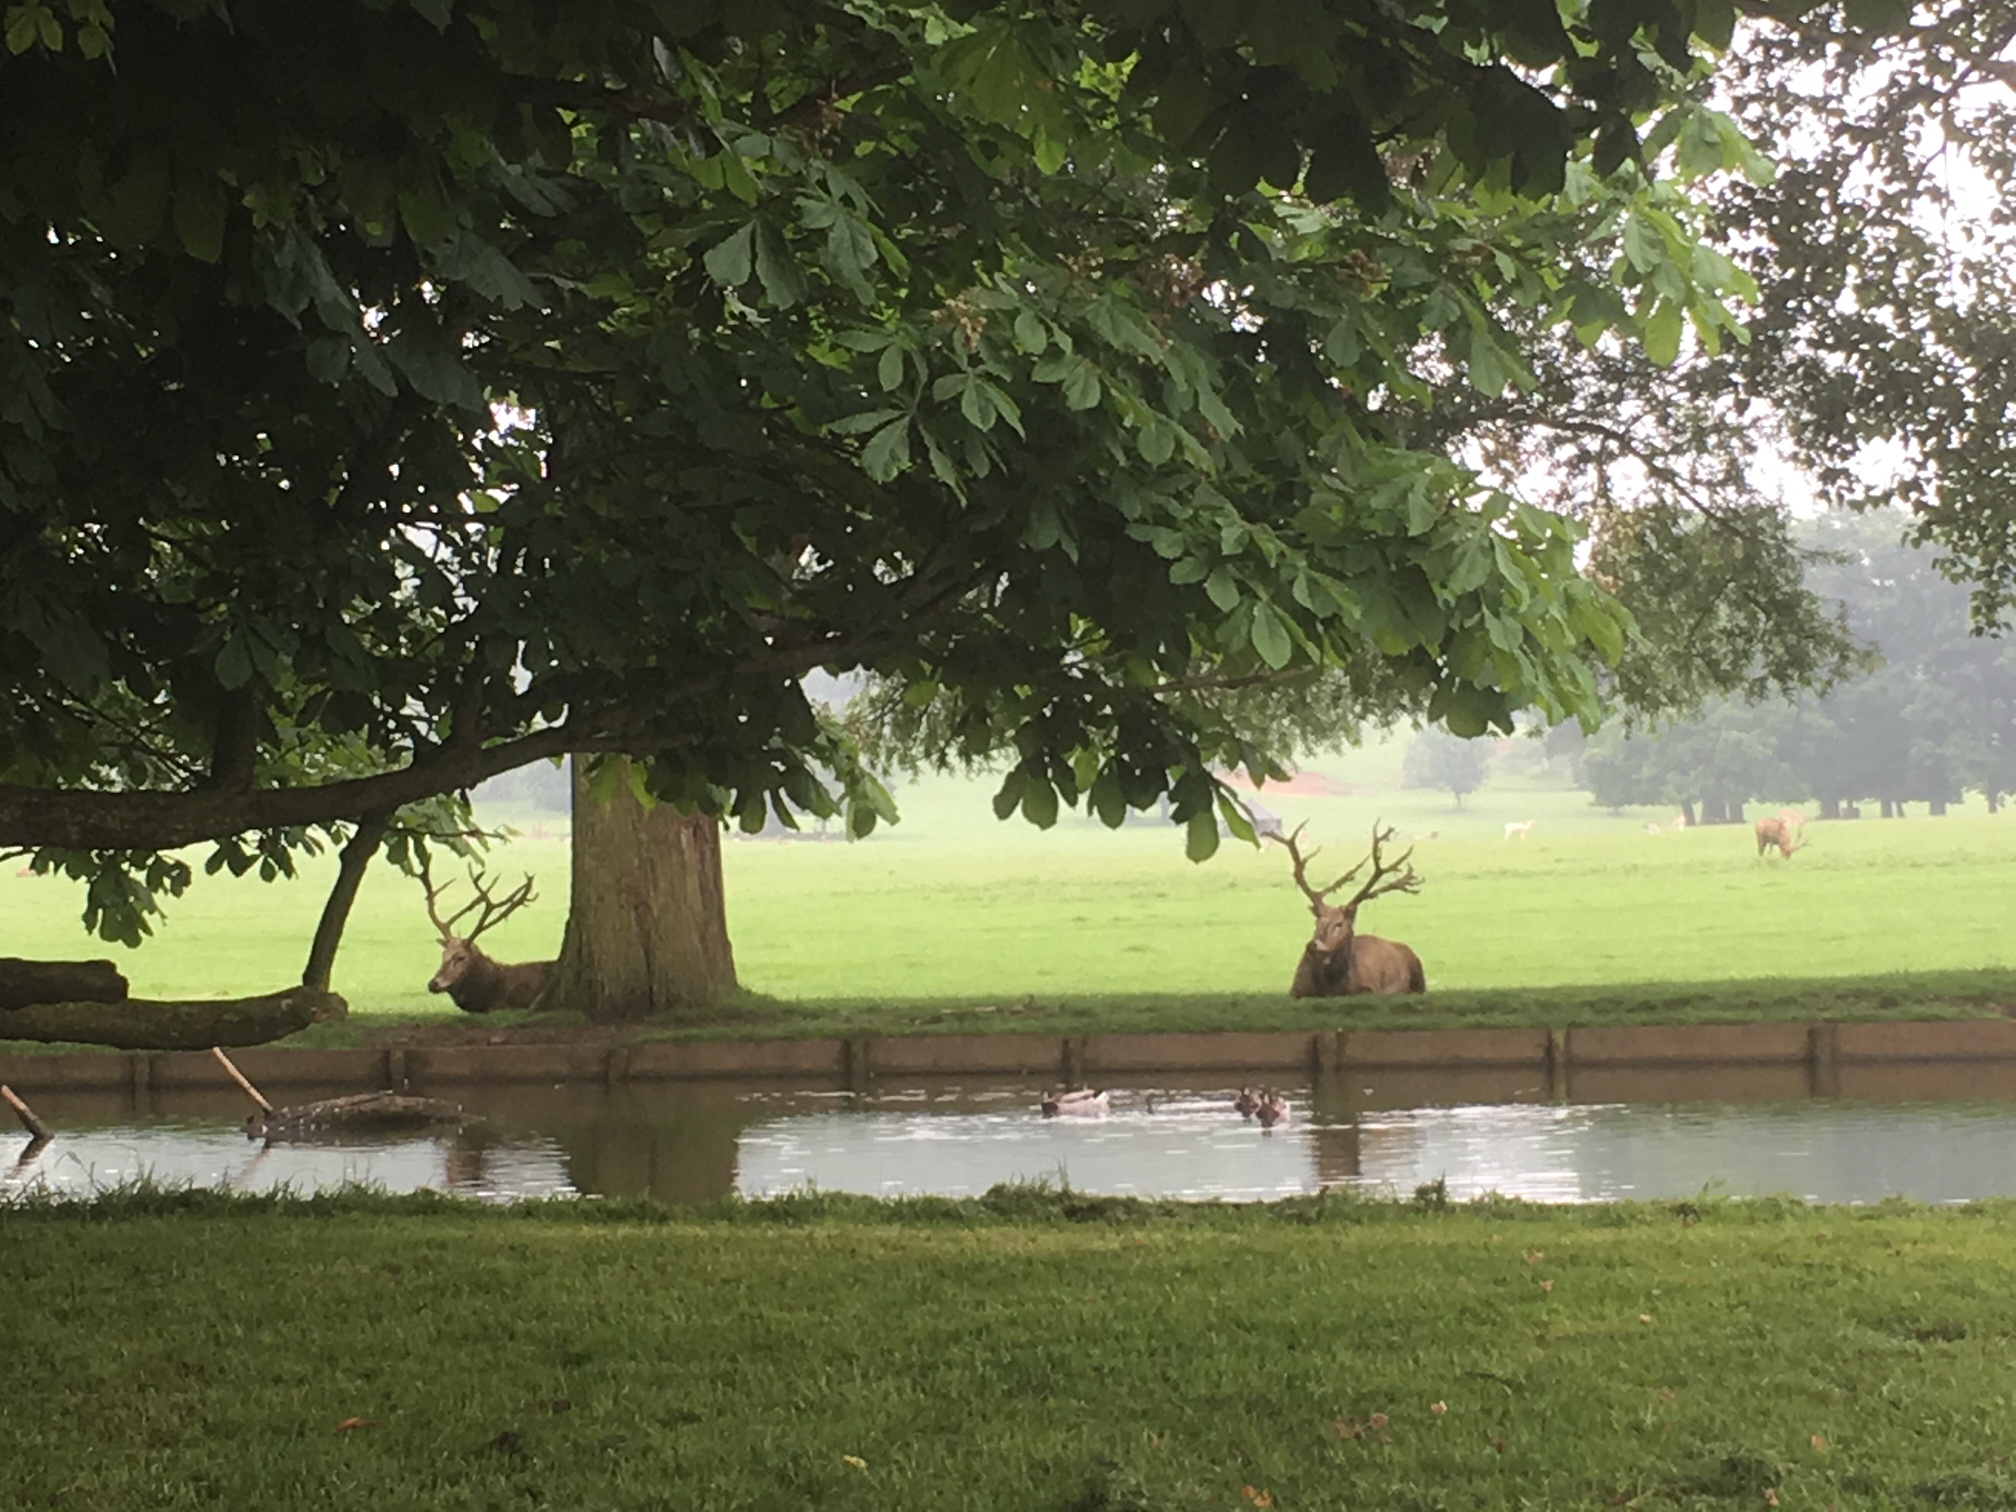 Pond and timeless sceene with deer